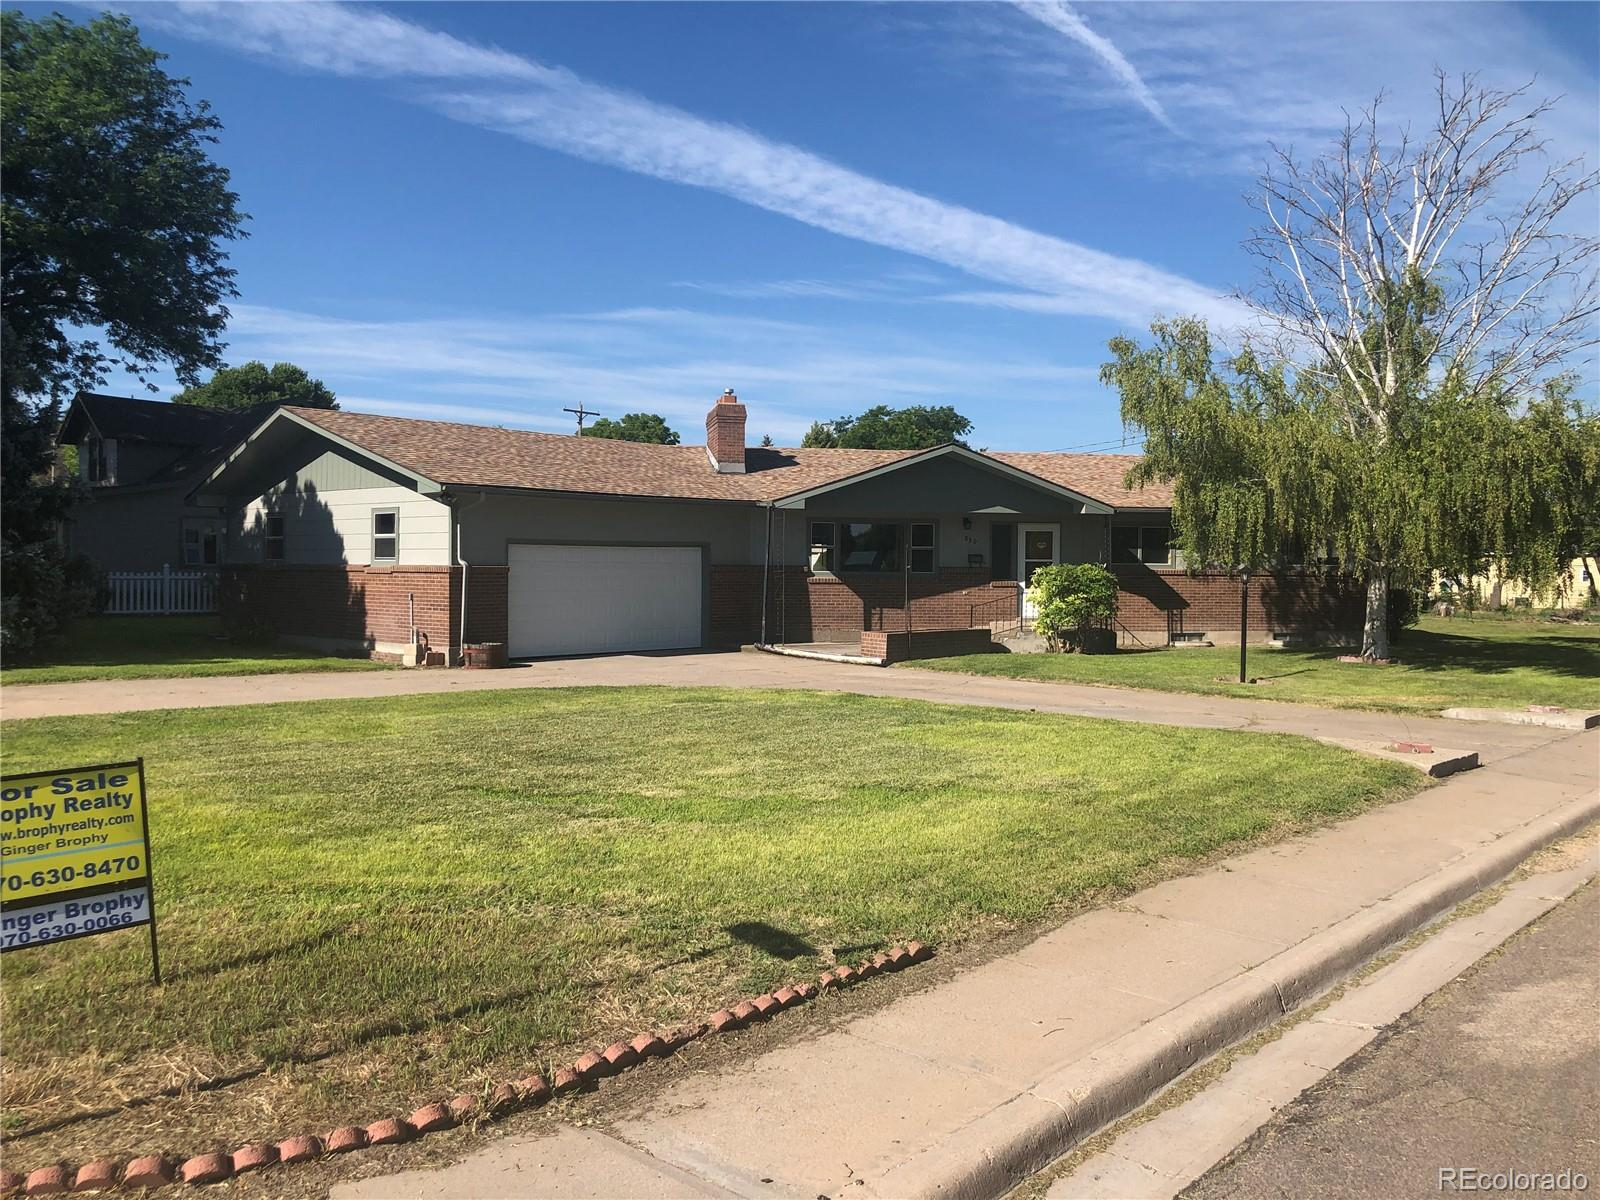 830 W 9th Street, Wray, CO 80758 - Wray, CO real estate listing